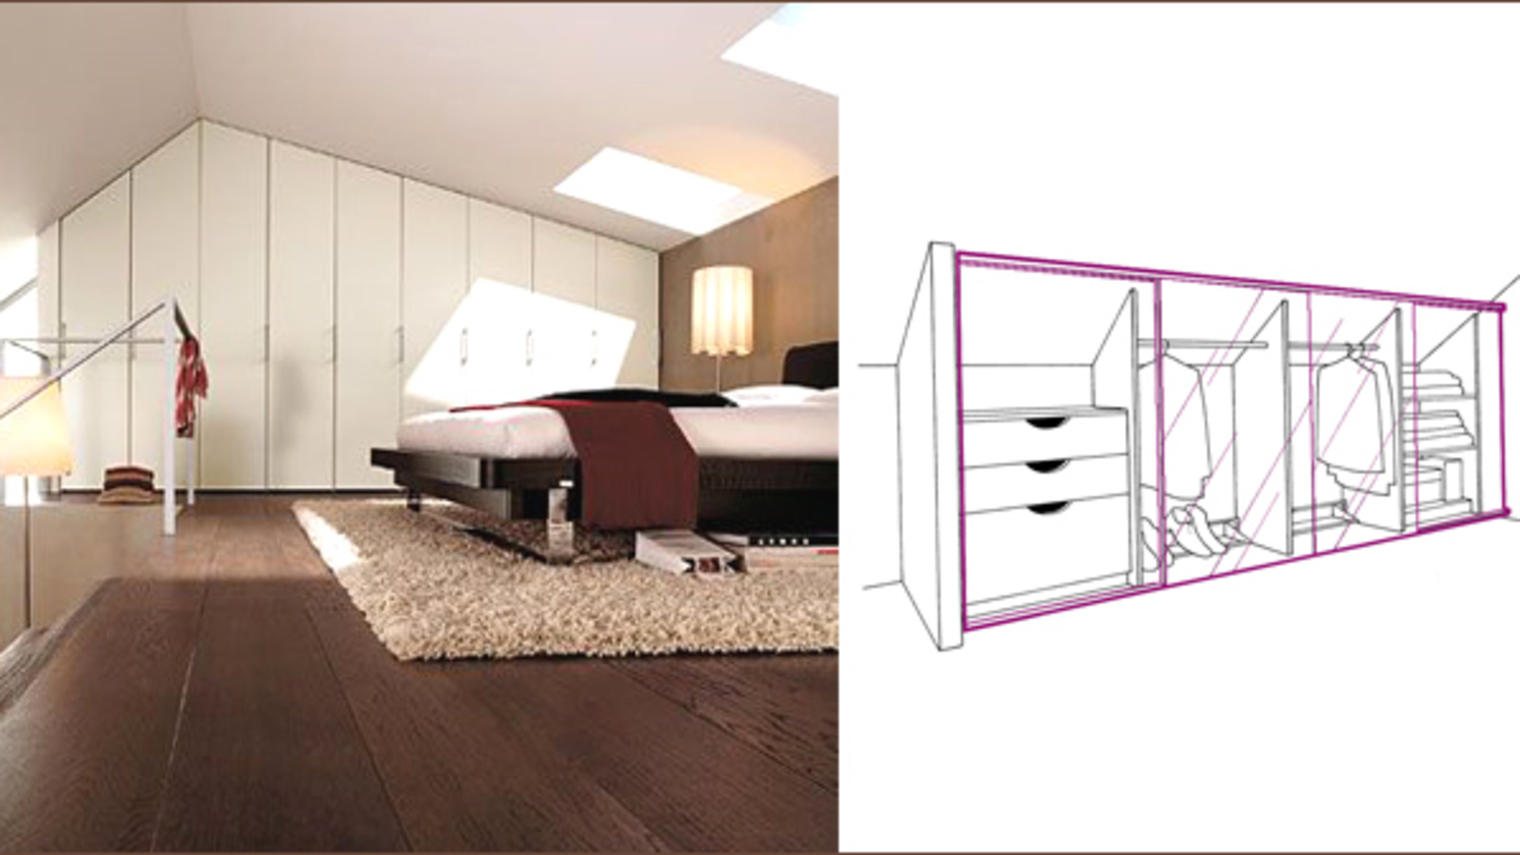 Super Amenagement Combles Dressing ~ Meilleures images d'inspiration  CY84